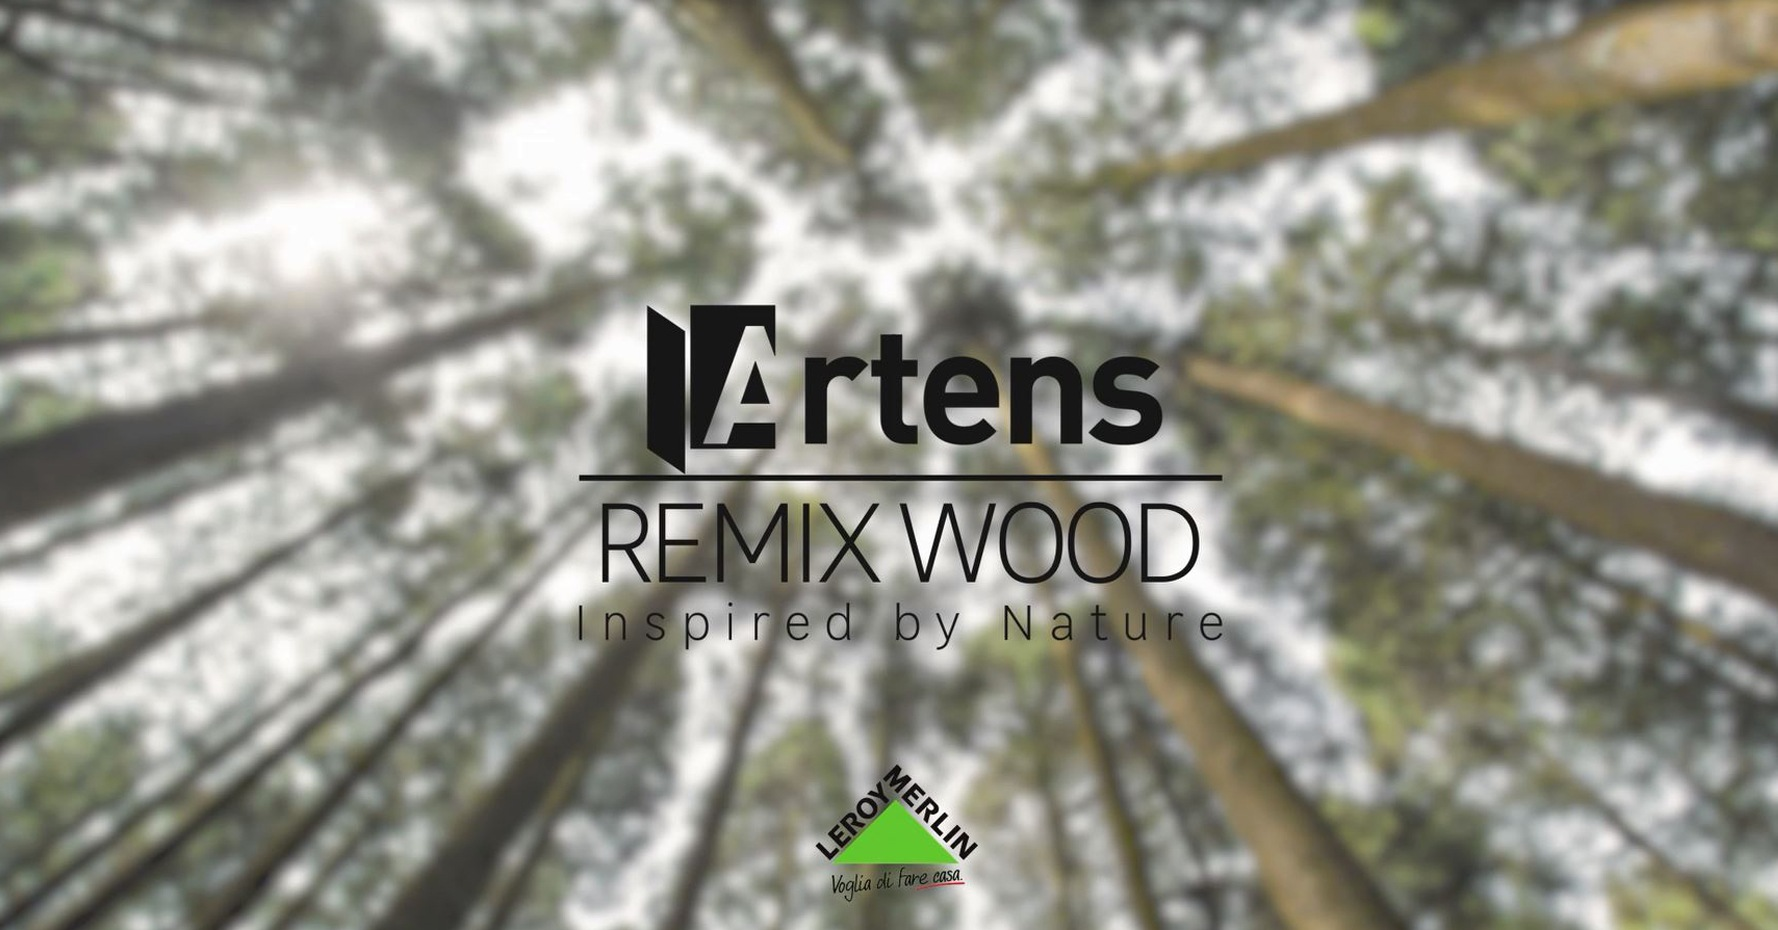 Artens Remix Wood preview video